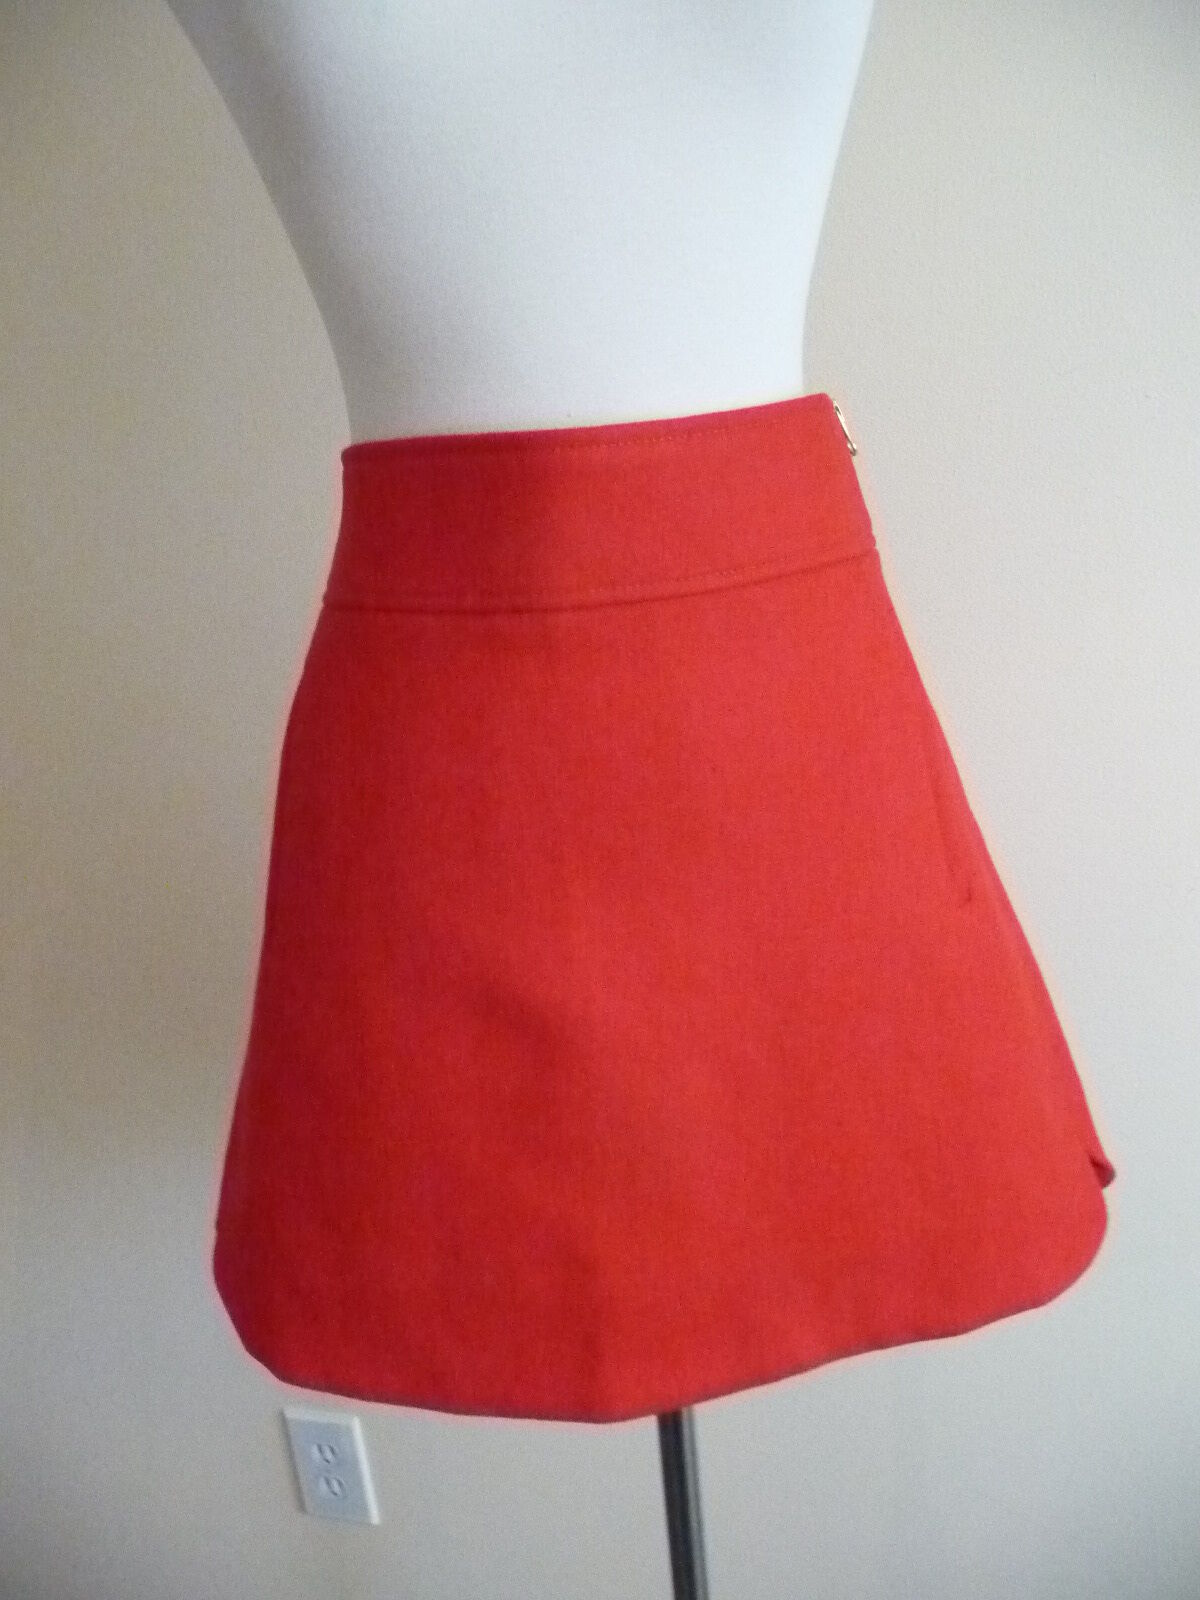 NEW J.CREW MINI SKIRT IN DOUBLE-SERGE WOOL, F8325, SZ 6, RED,  98